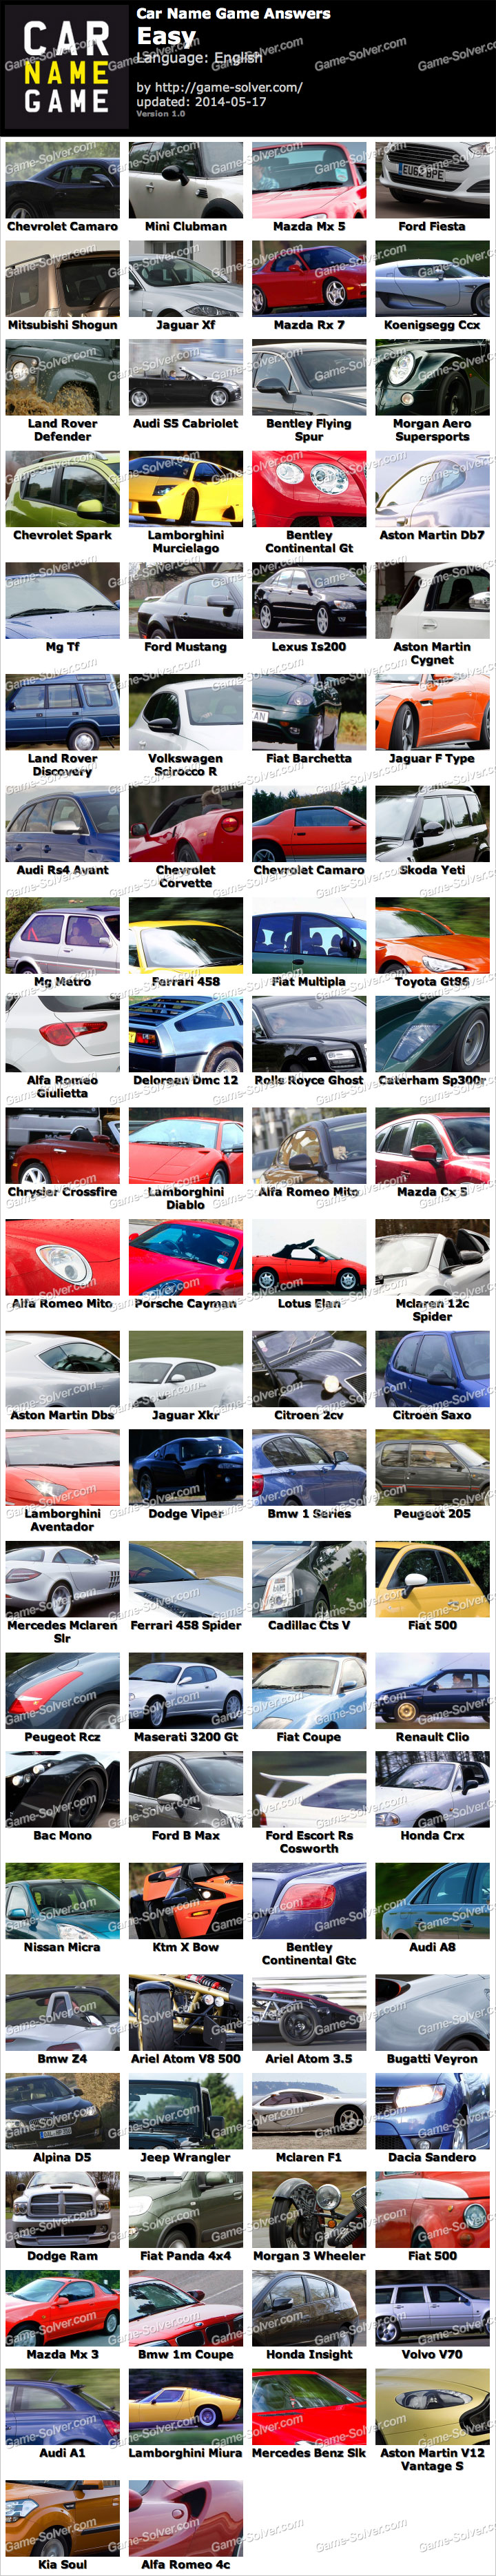 Car Name Game Easy Answers